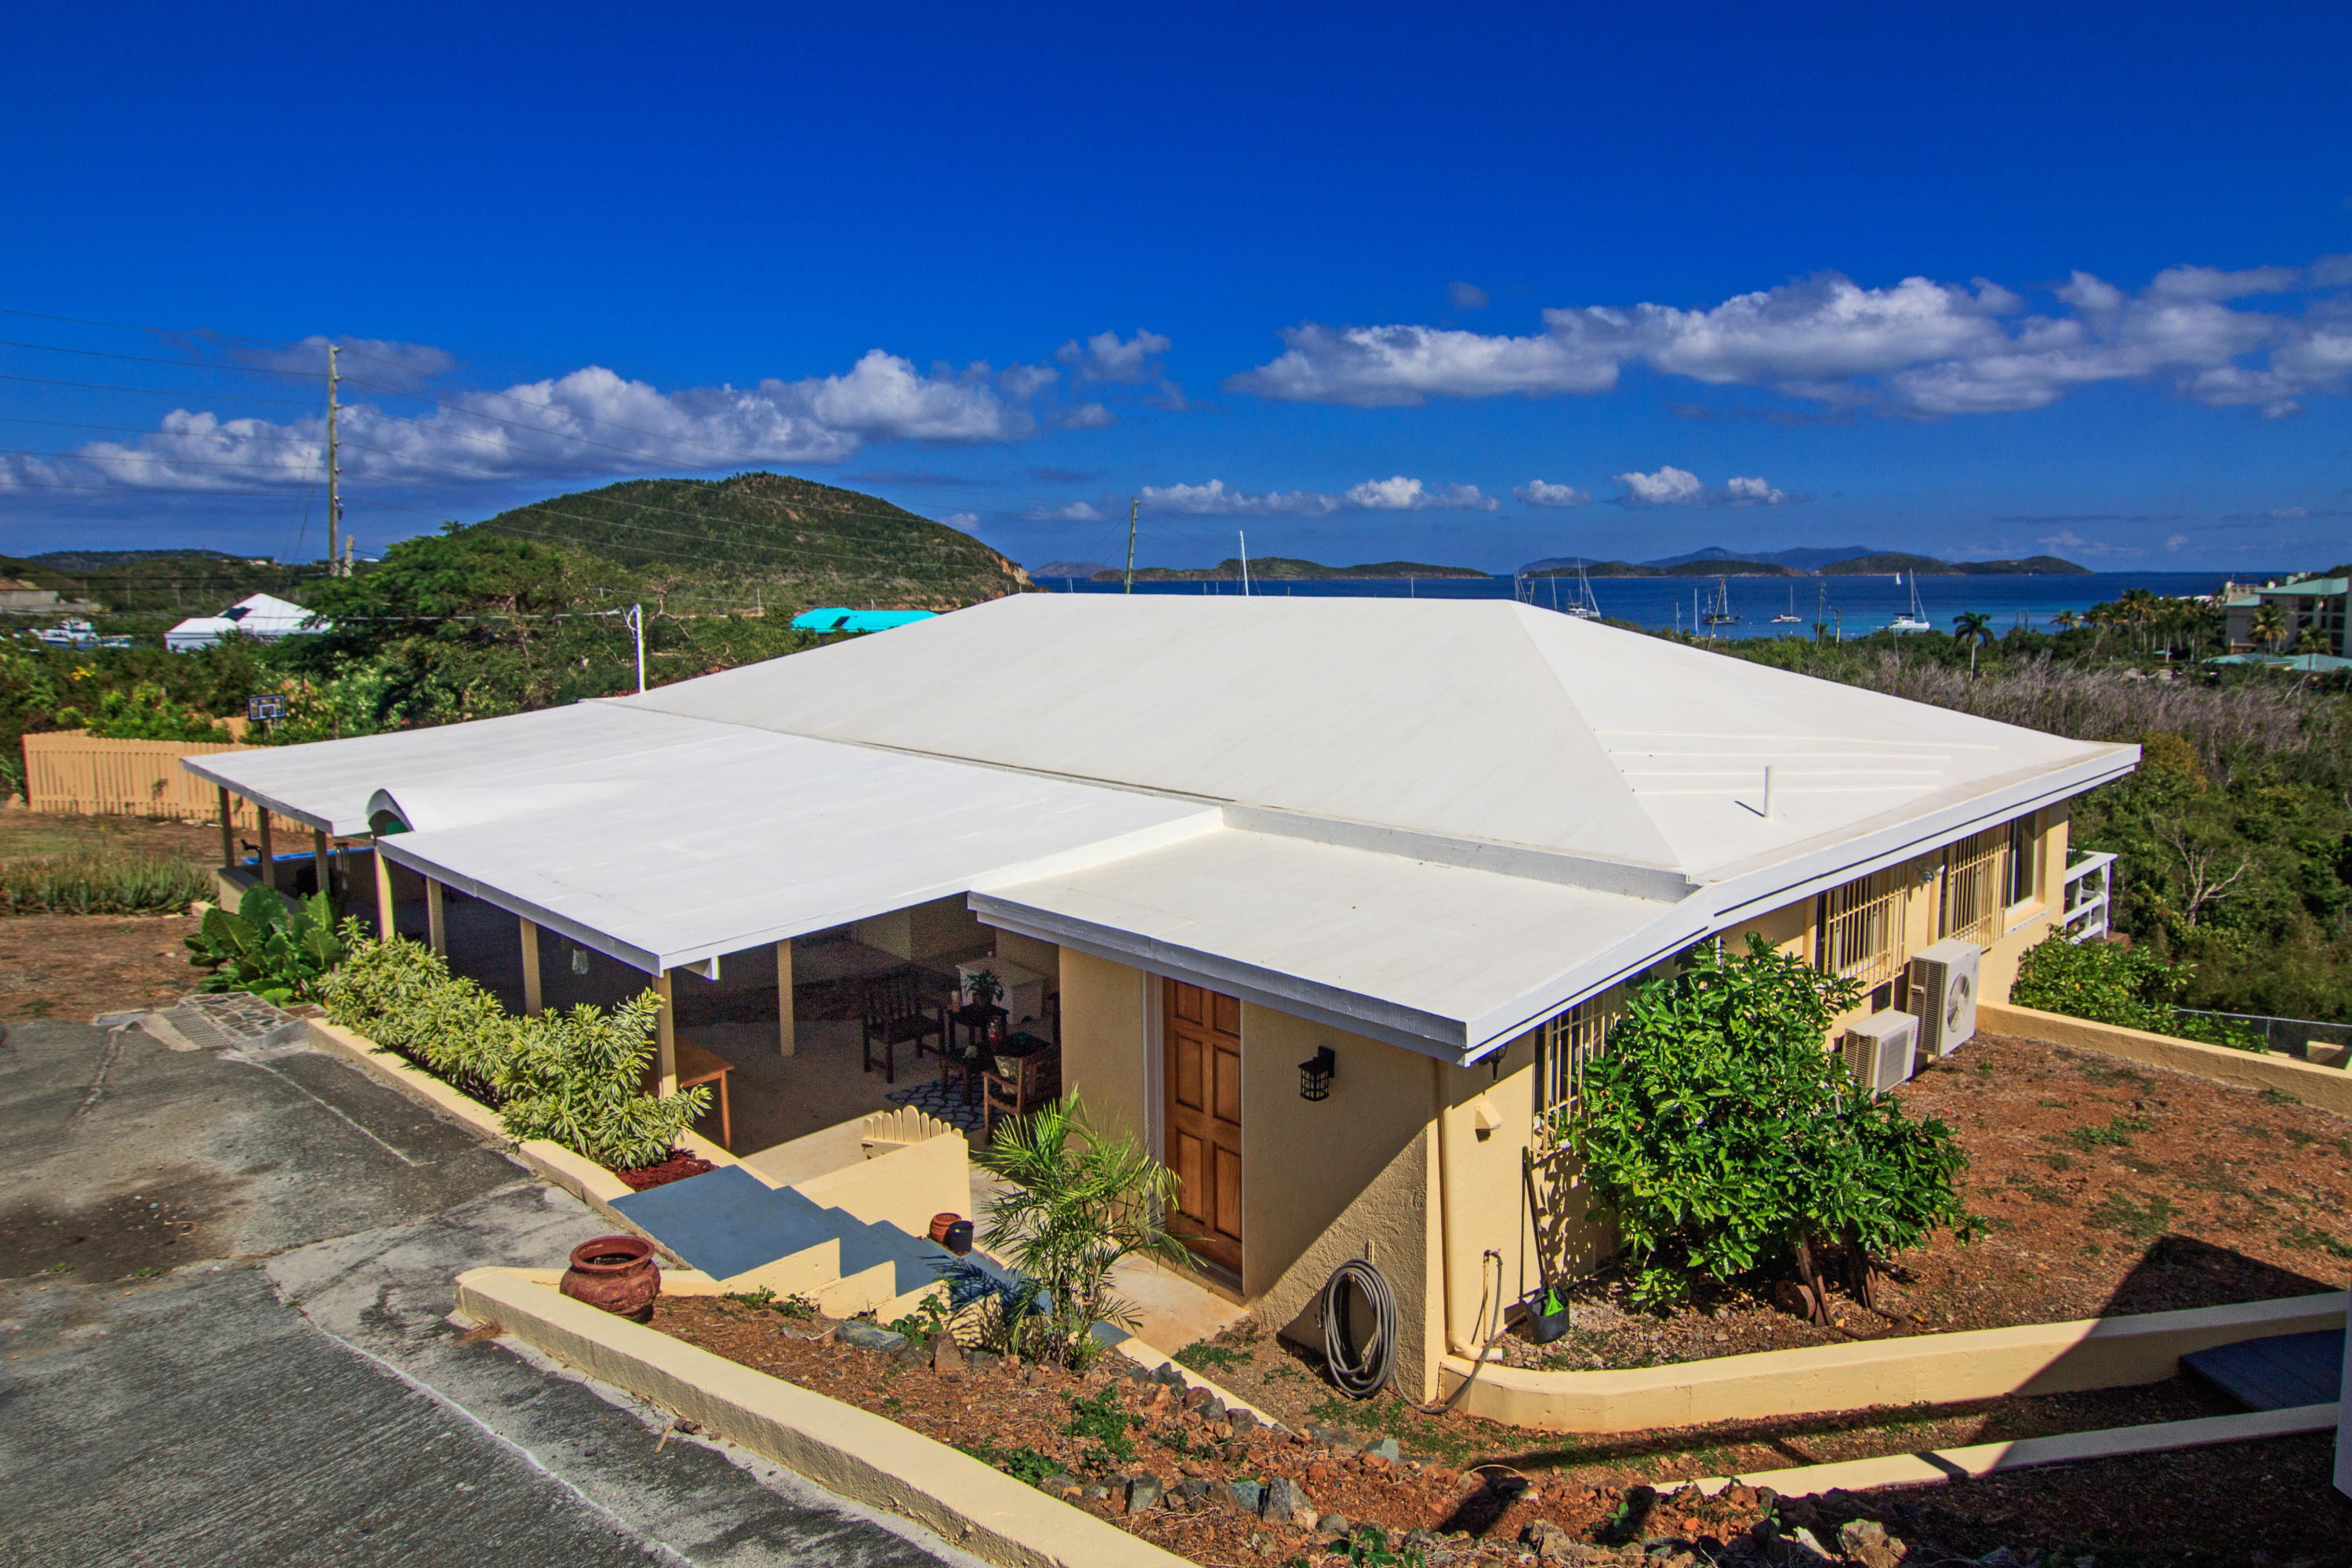 Multi-Family Home for Sale at 5-16 Nazareth RH 5-16 Nazareth RH St Thomas, Virgin Islands 00802 United States Virgin Islands